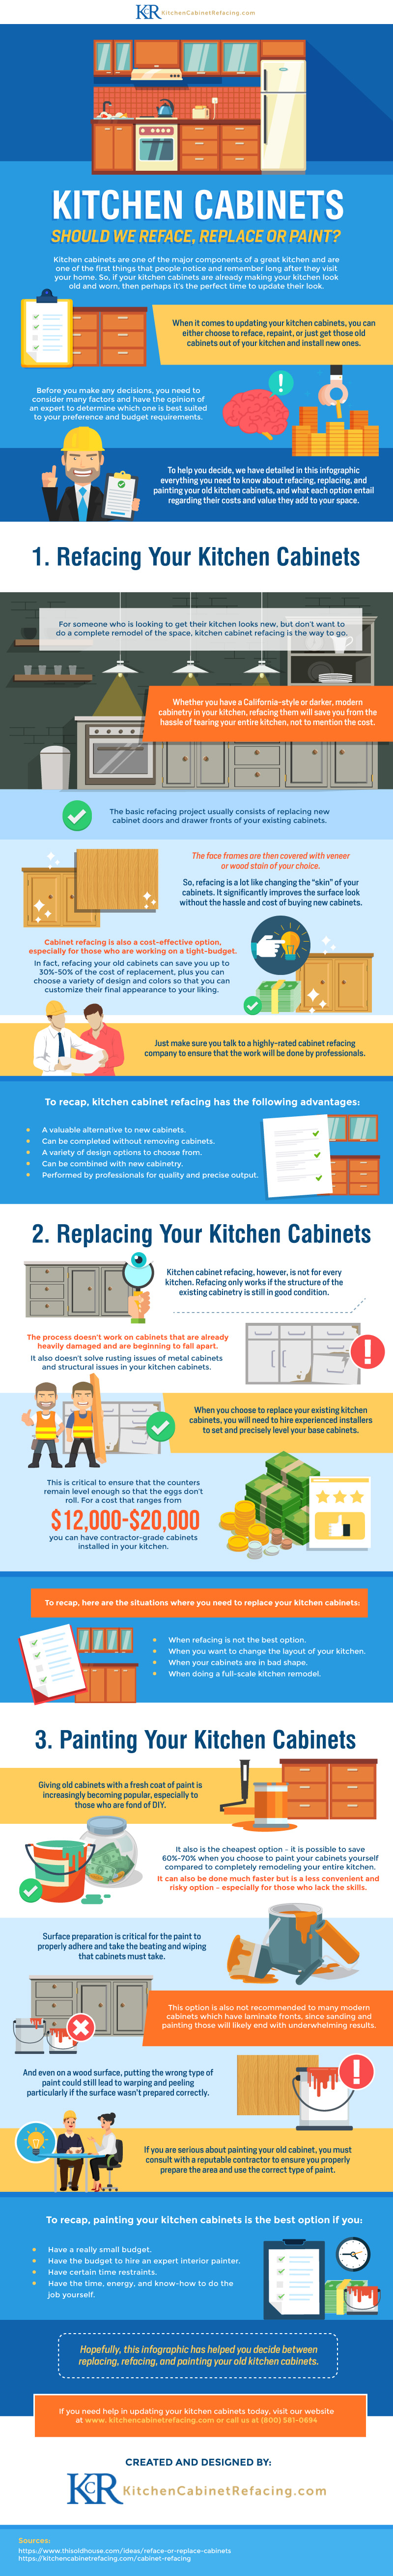 Kitchen Cabinets – Reface, Replace or Paint? [Infographic]